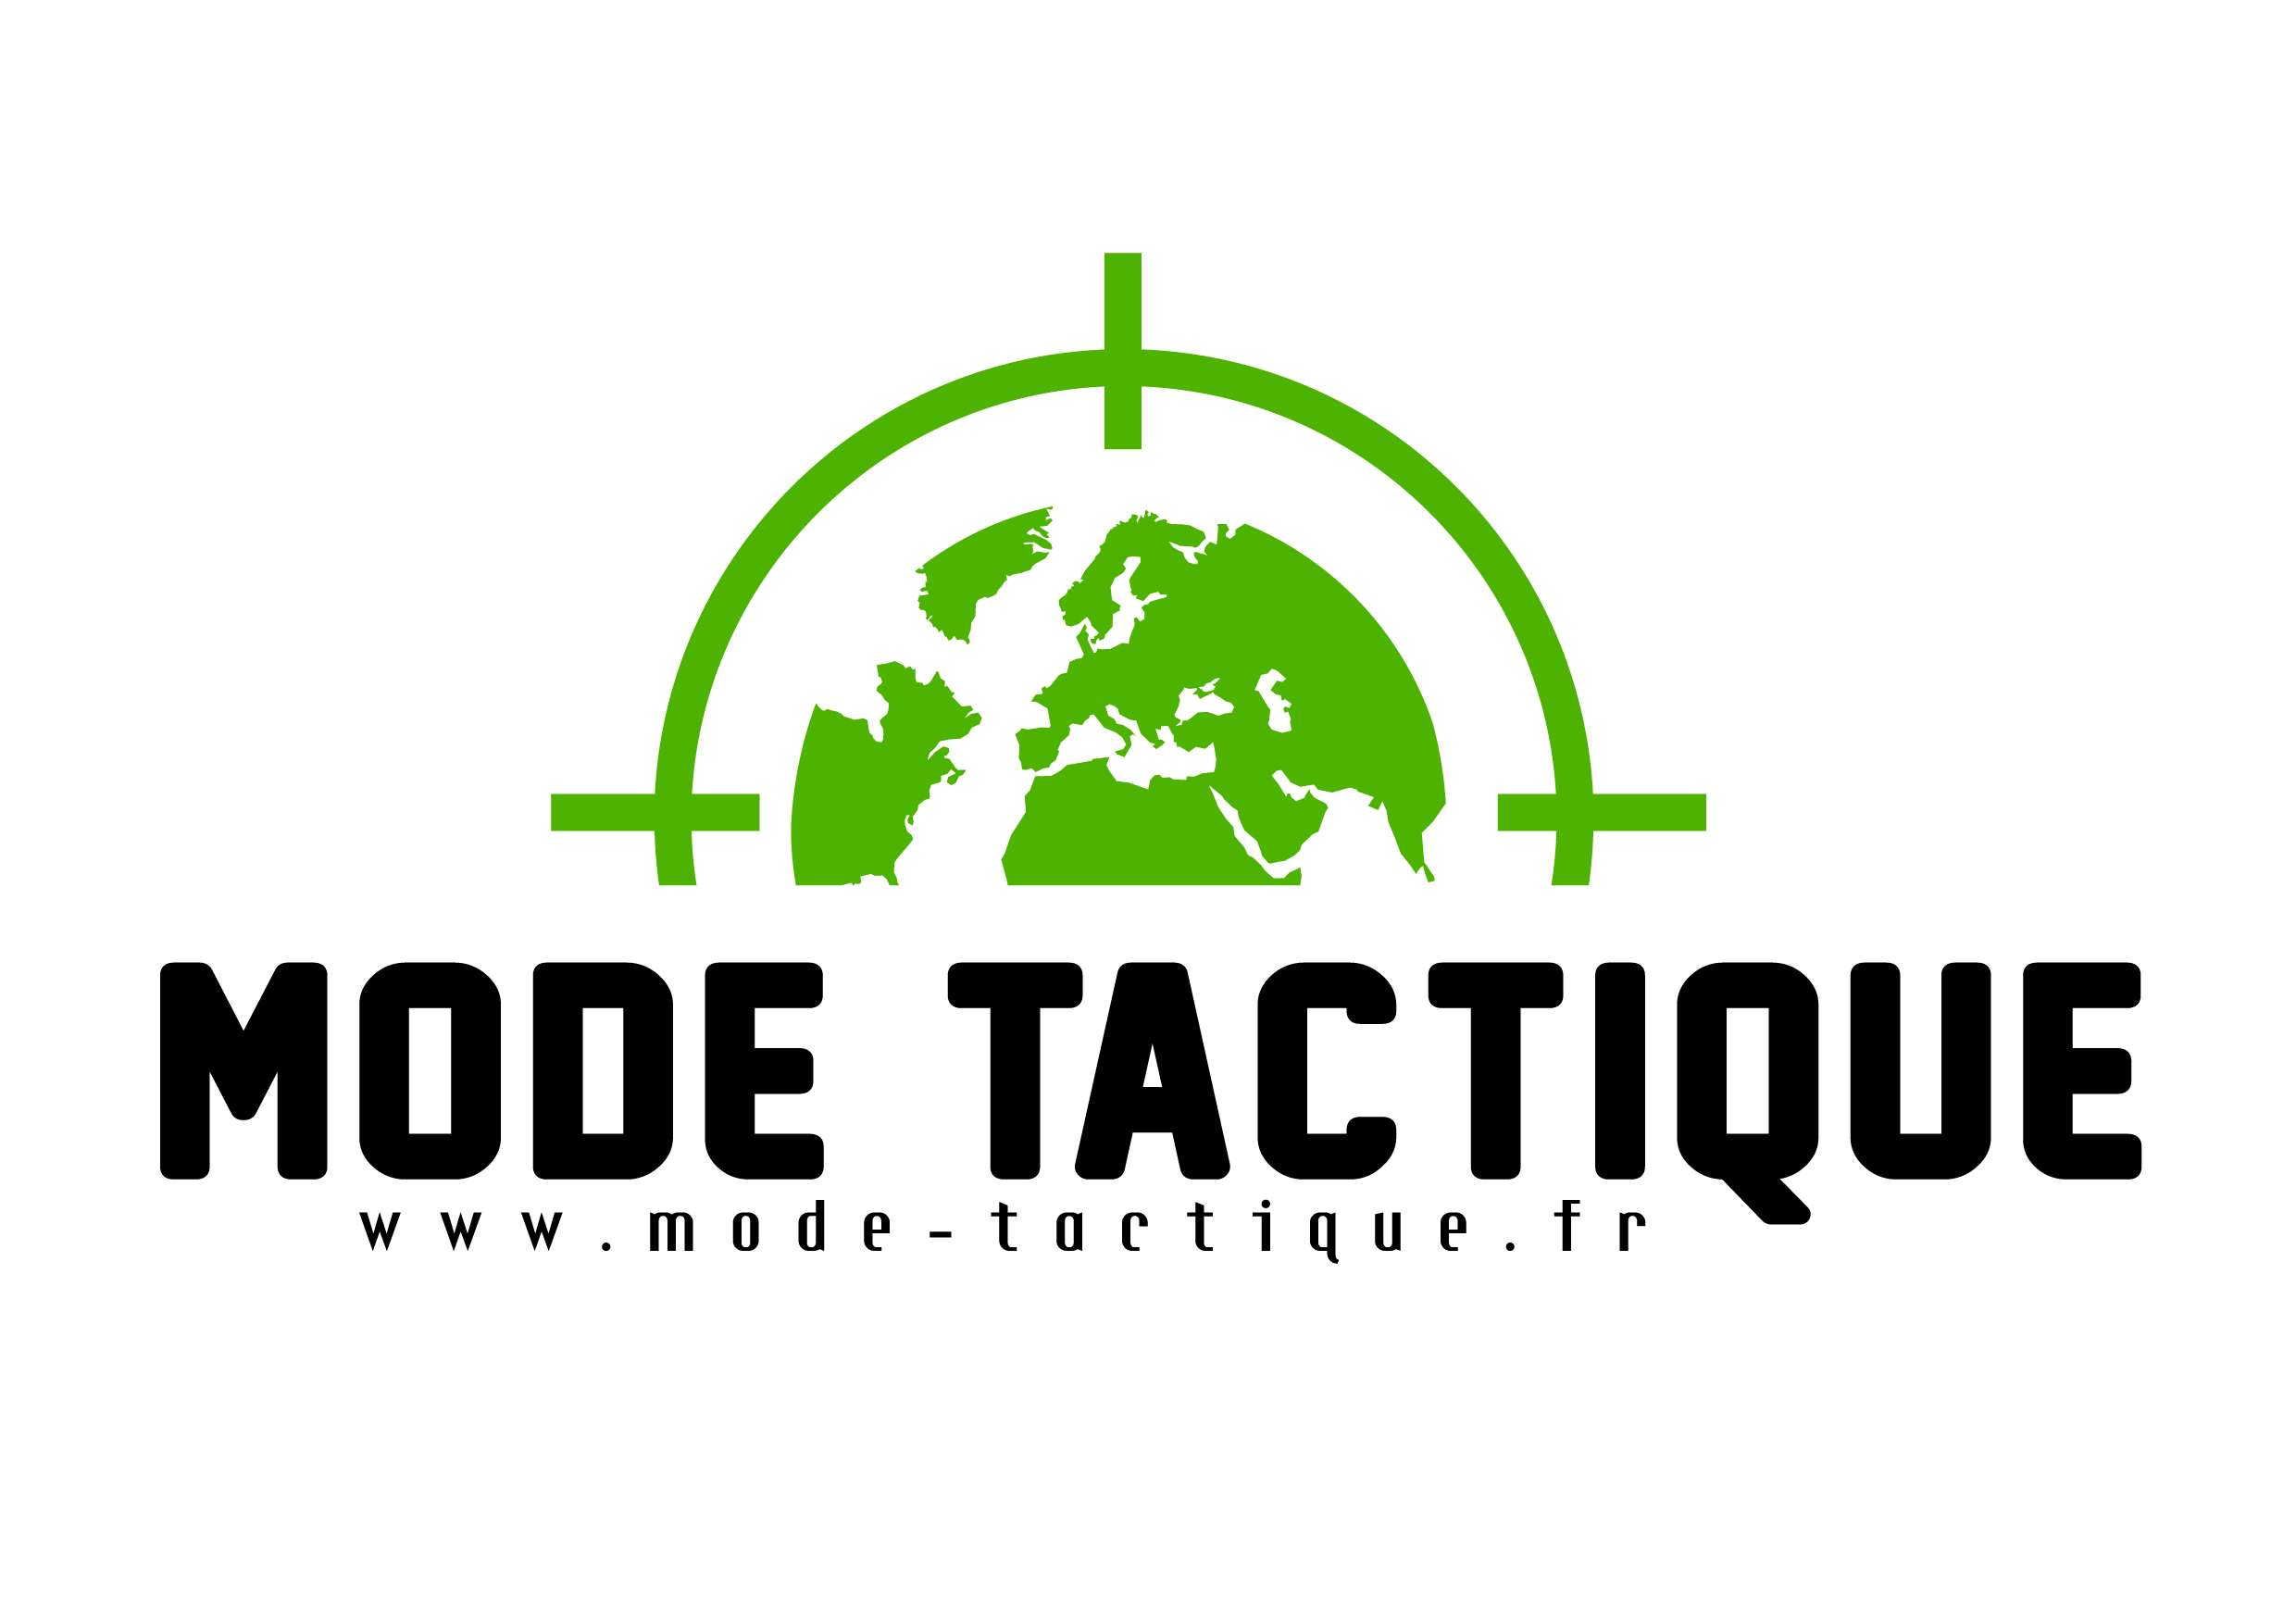 MODE TACTIQUE